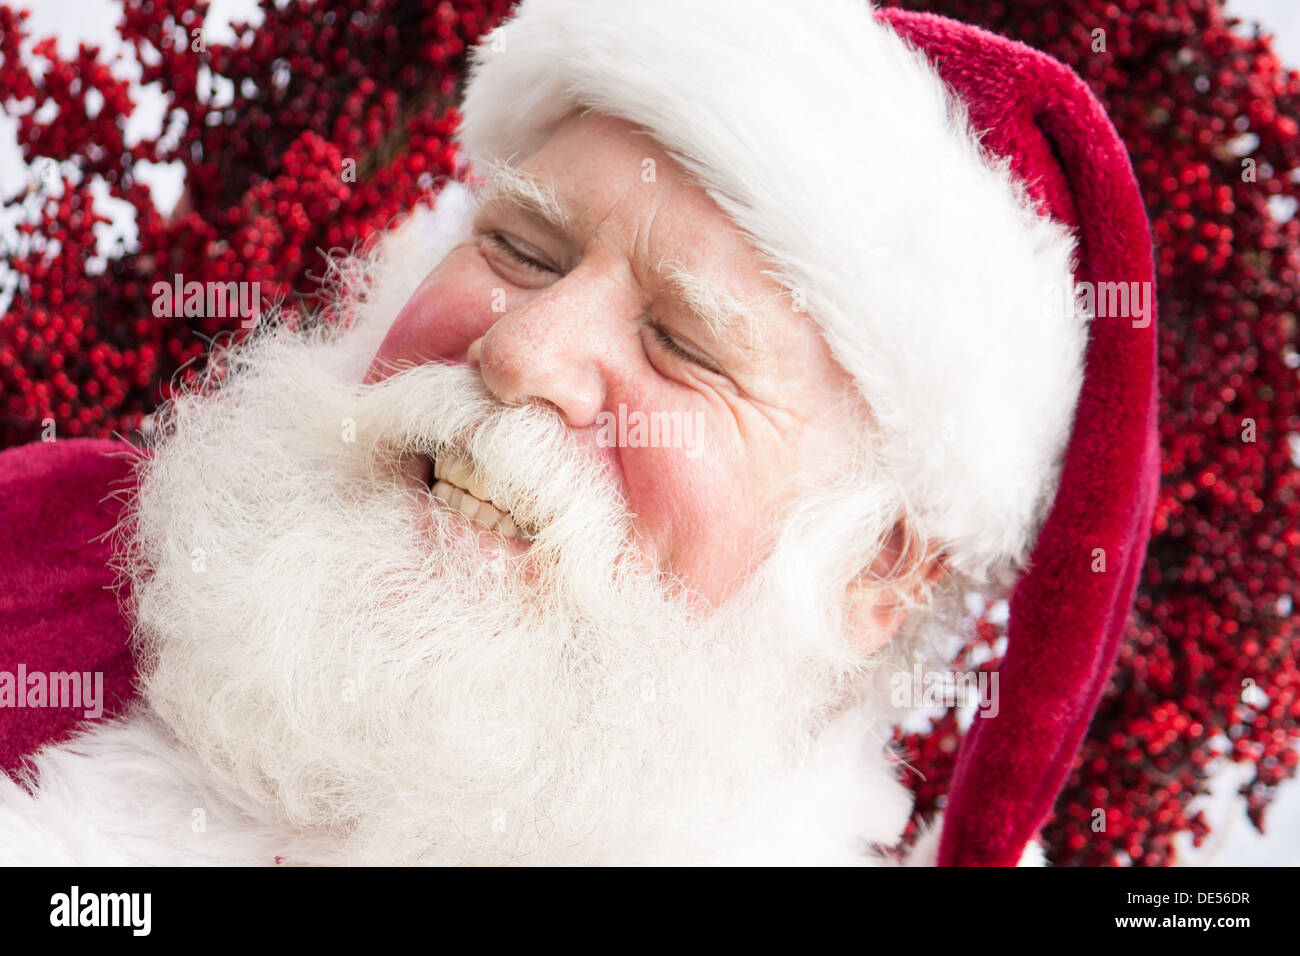 Santa is laughing out of control - Stock Image